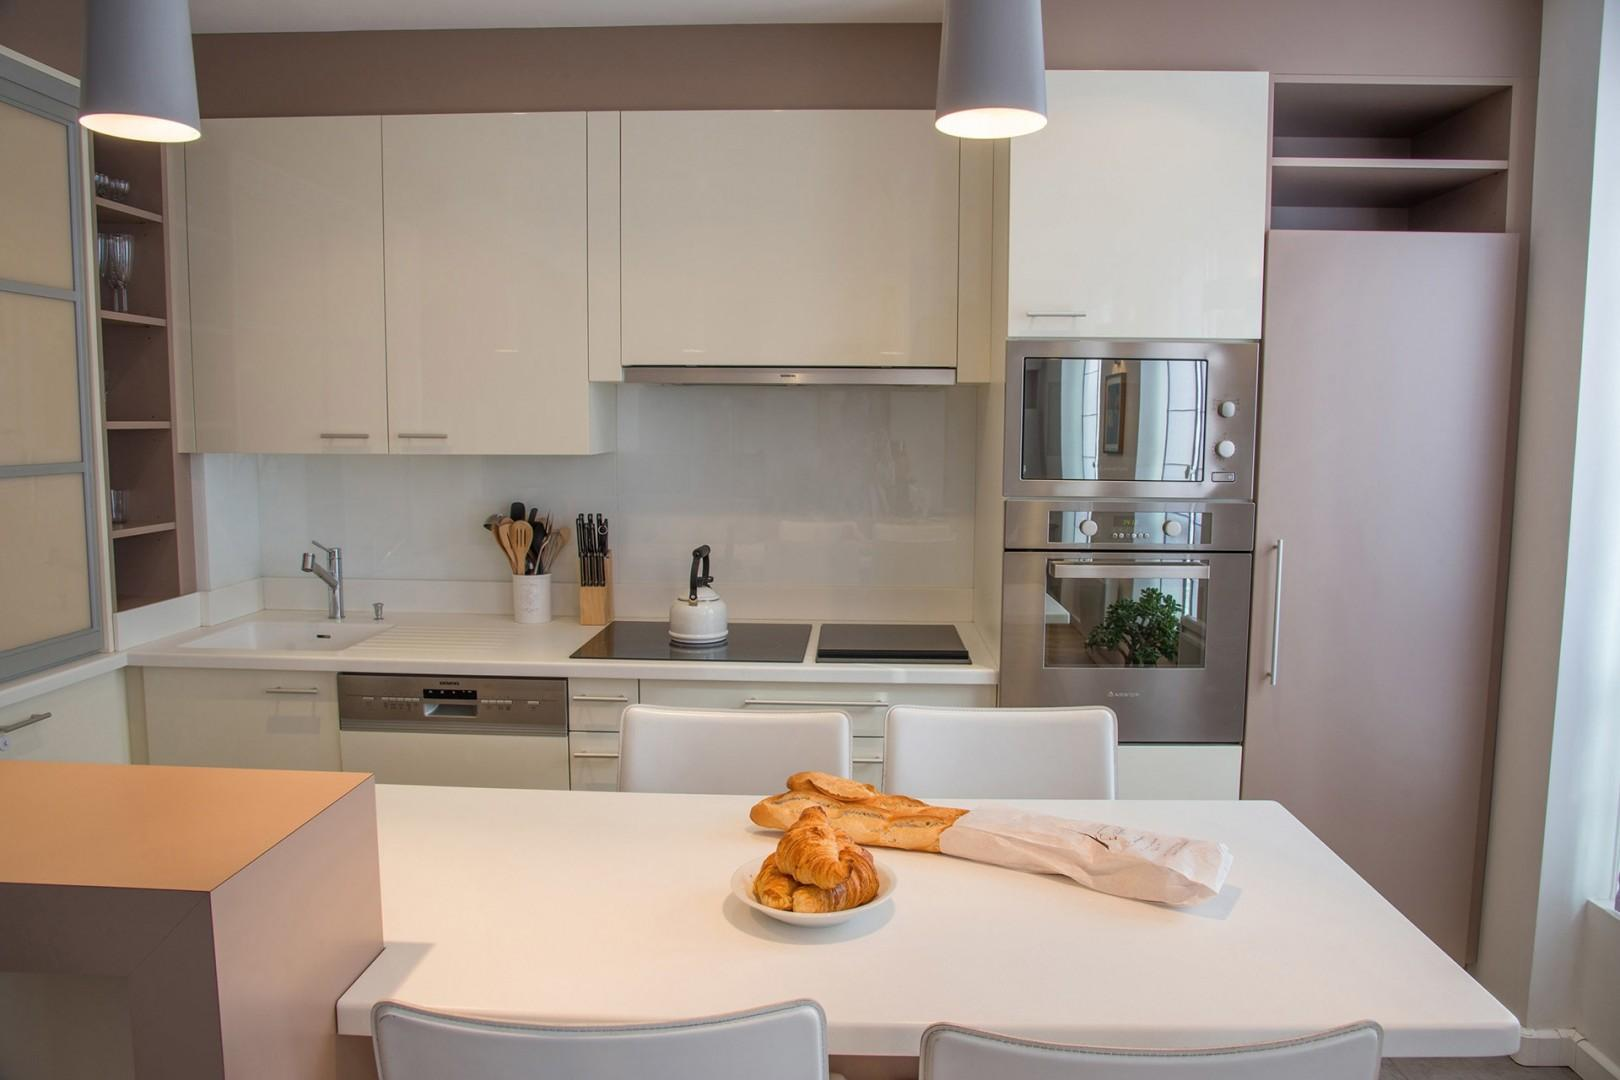 The eat-in style kitchen provides a comfortable place to enjoy casual meals.